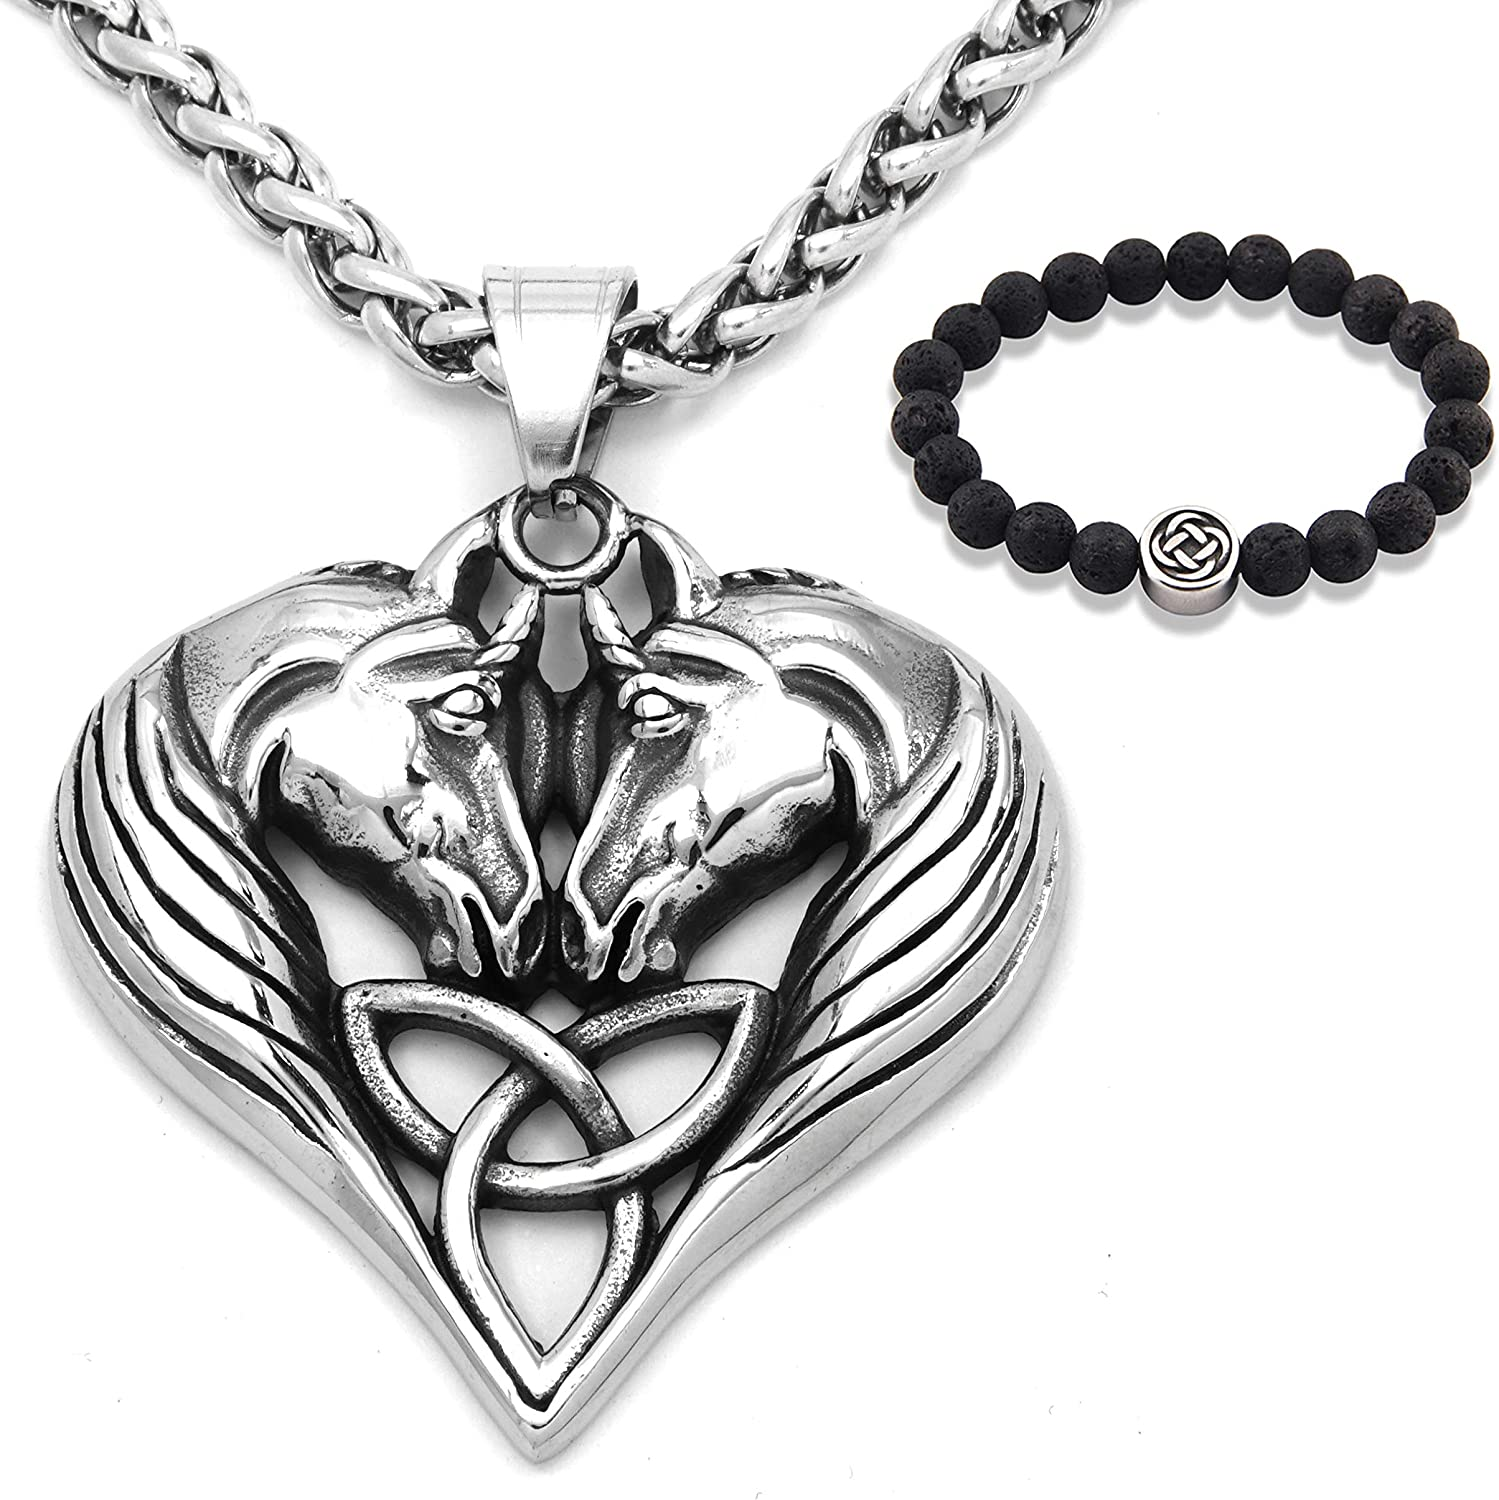 Gungneer Triquetra Horse Necklace Celtic Pendant Stainless Steel Chain Power Amulet Trinity Knot Jewelry Men Women